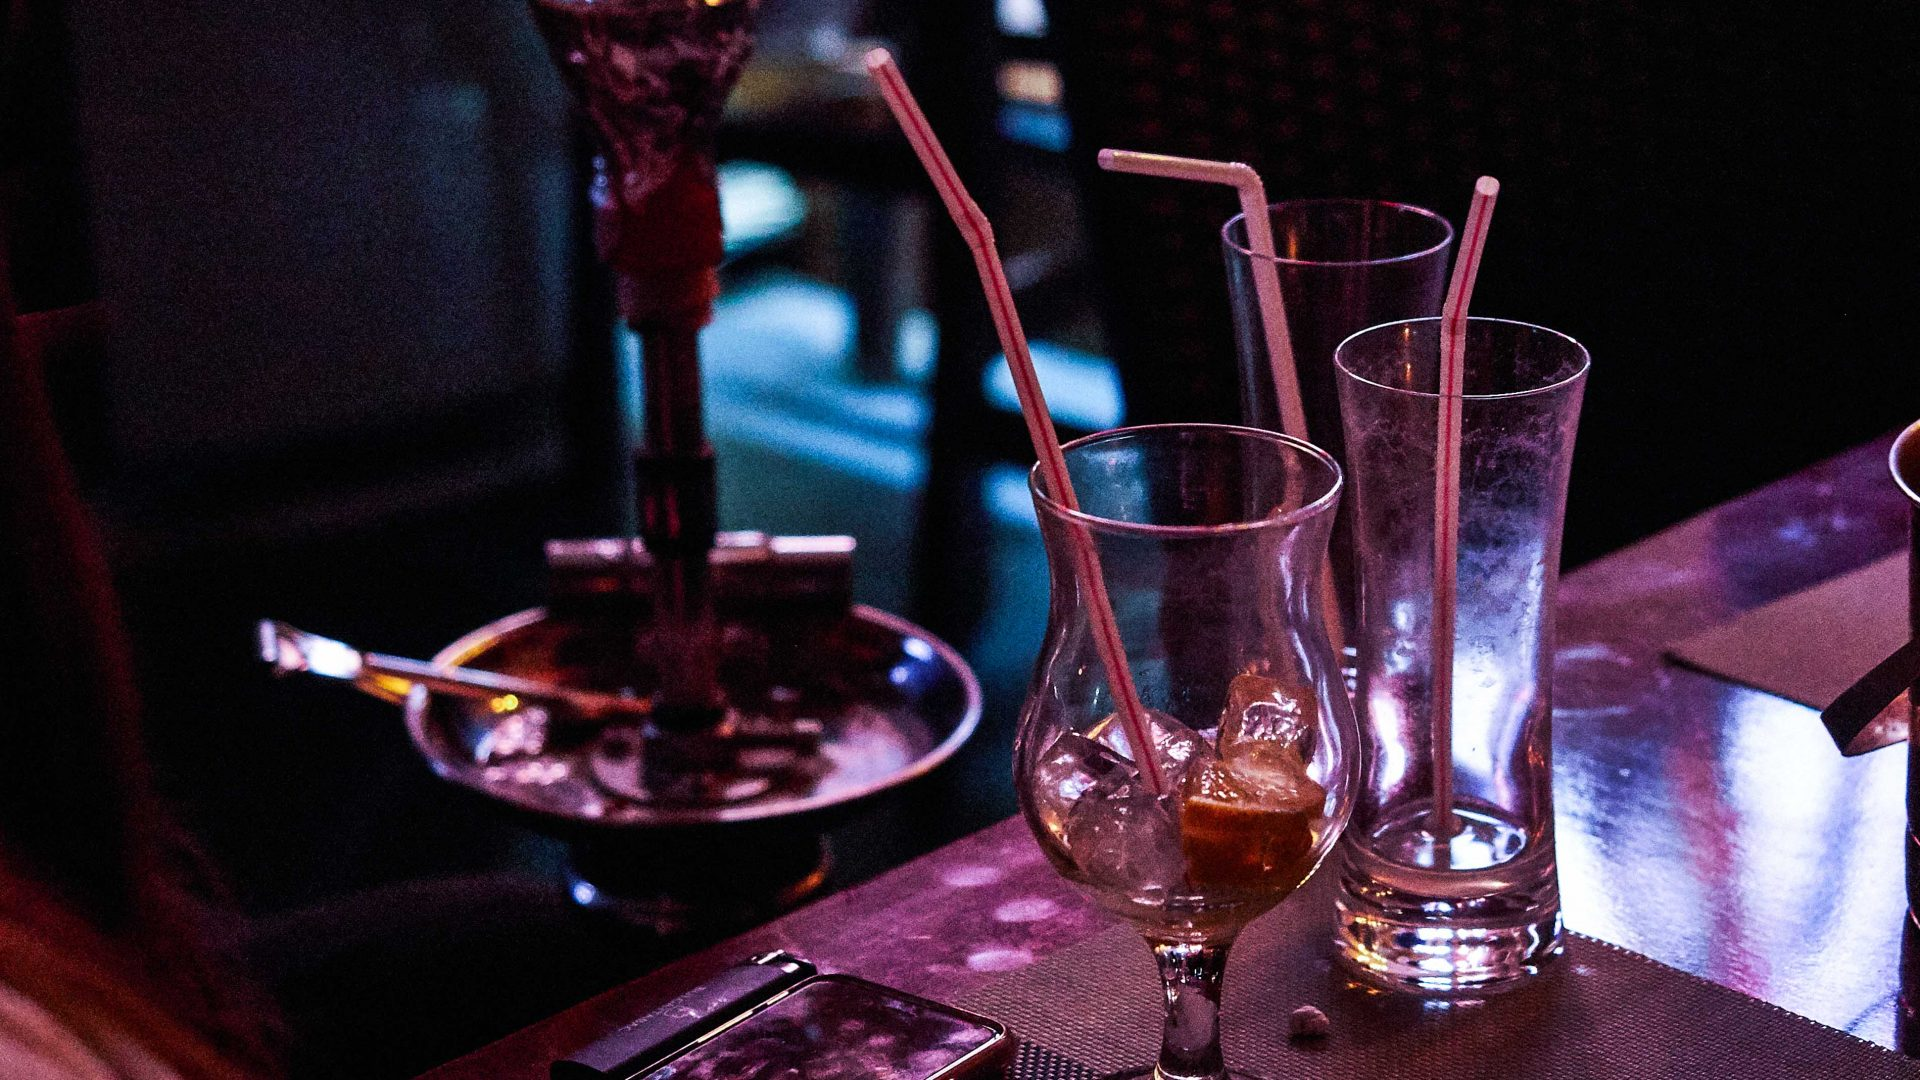 A hookah pipe and empty glasses at a bar in Bazari Nishtiman, Erbil, Iraq.